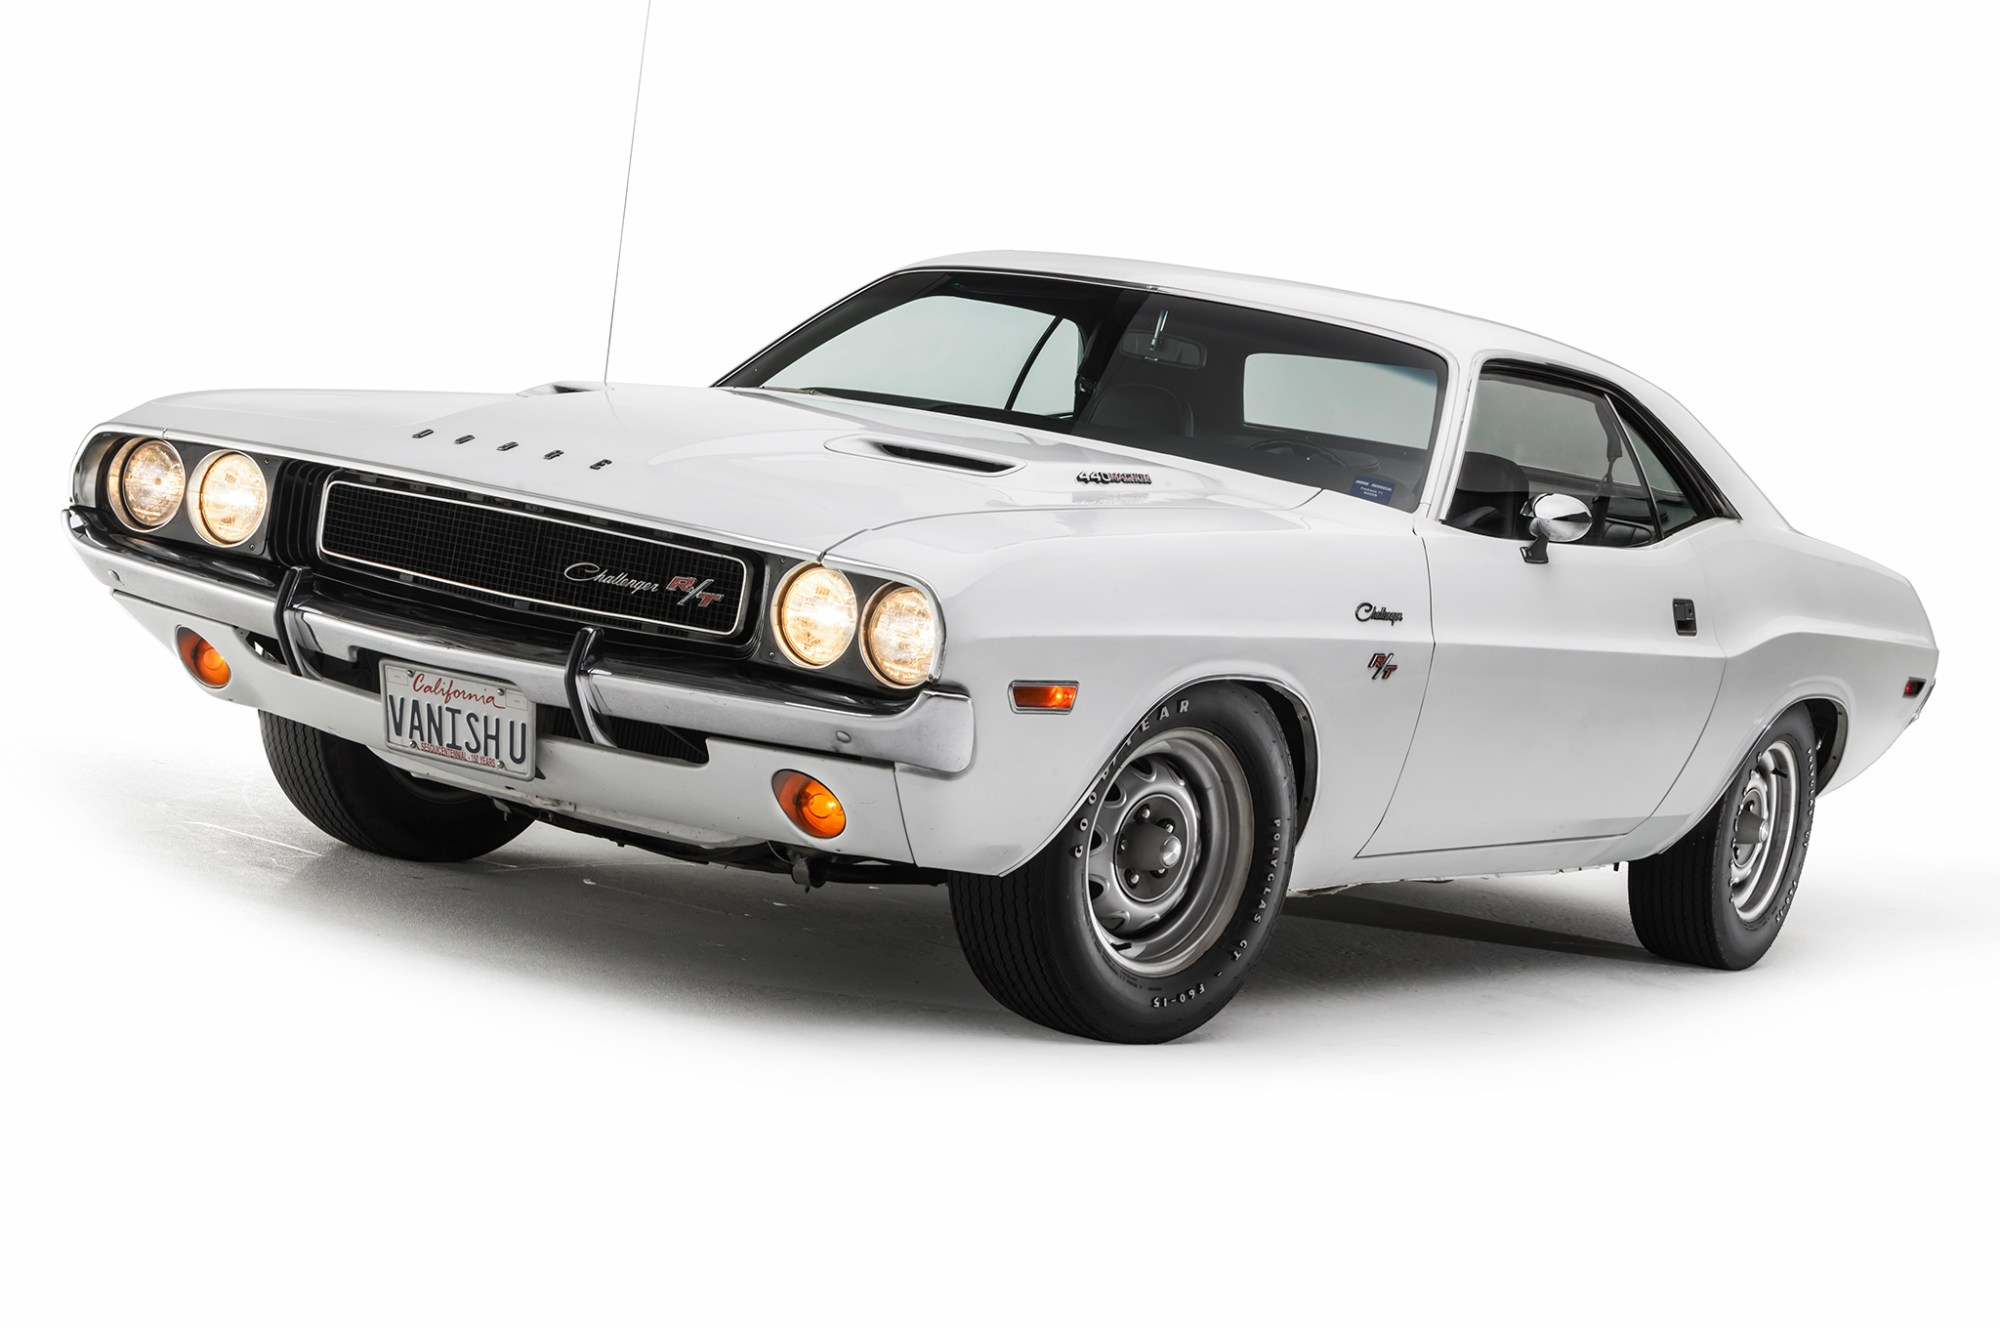 hight resolution of dodge challenger from vanishing point movie